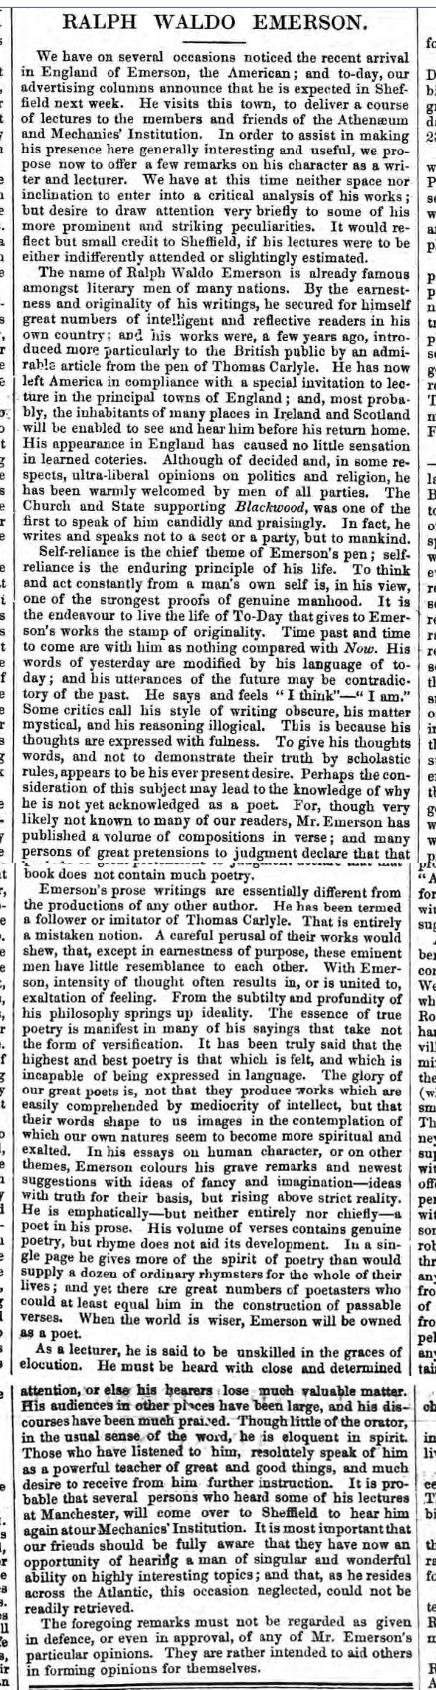 historical newspaper story about Ralph Waldo Emerson